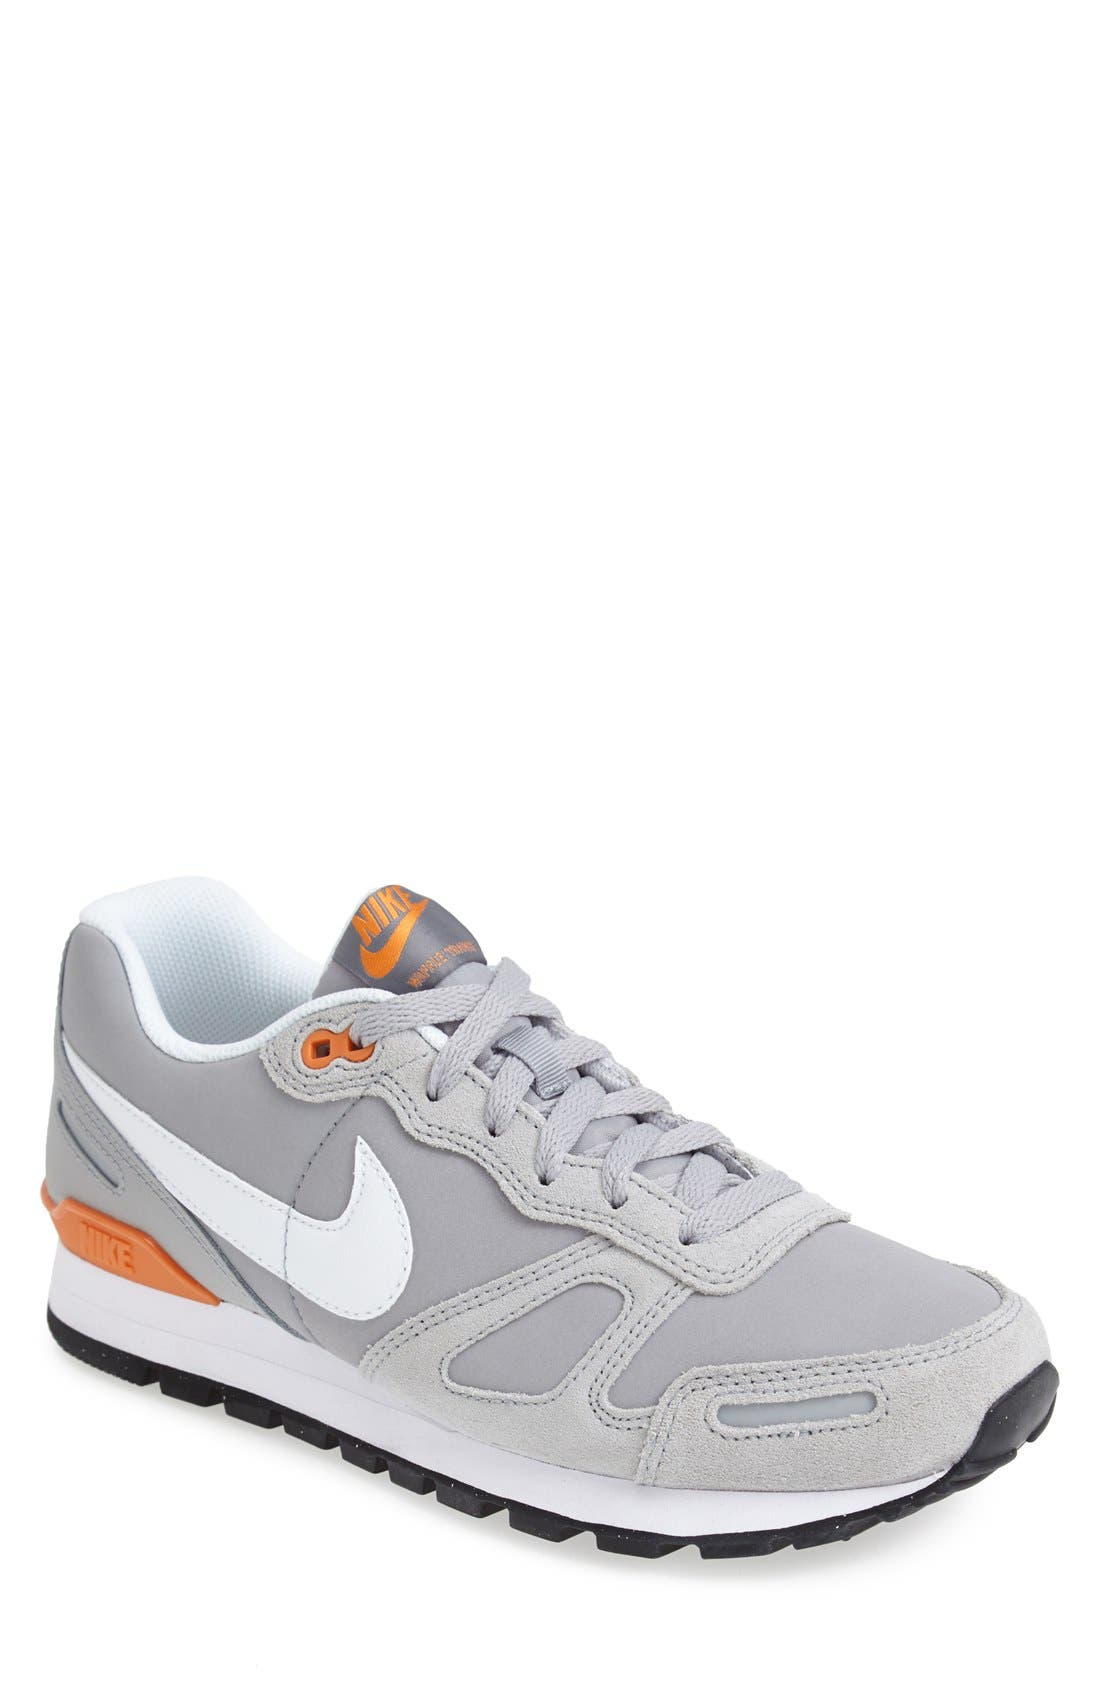 NIKE 'Air Waffle Trainer' Sneaker, Main, color, 062